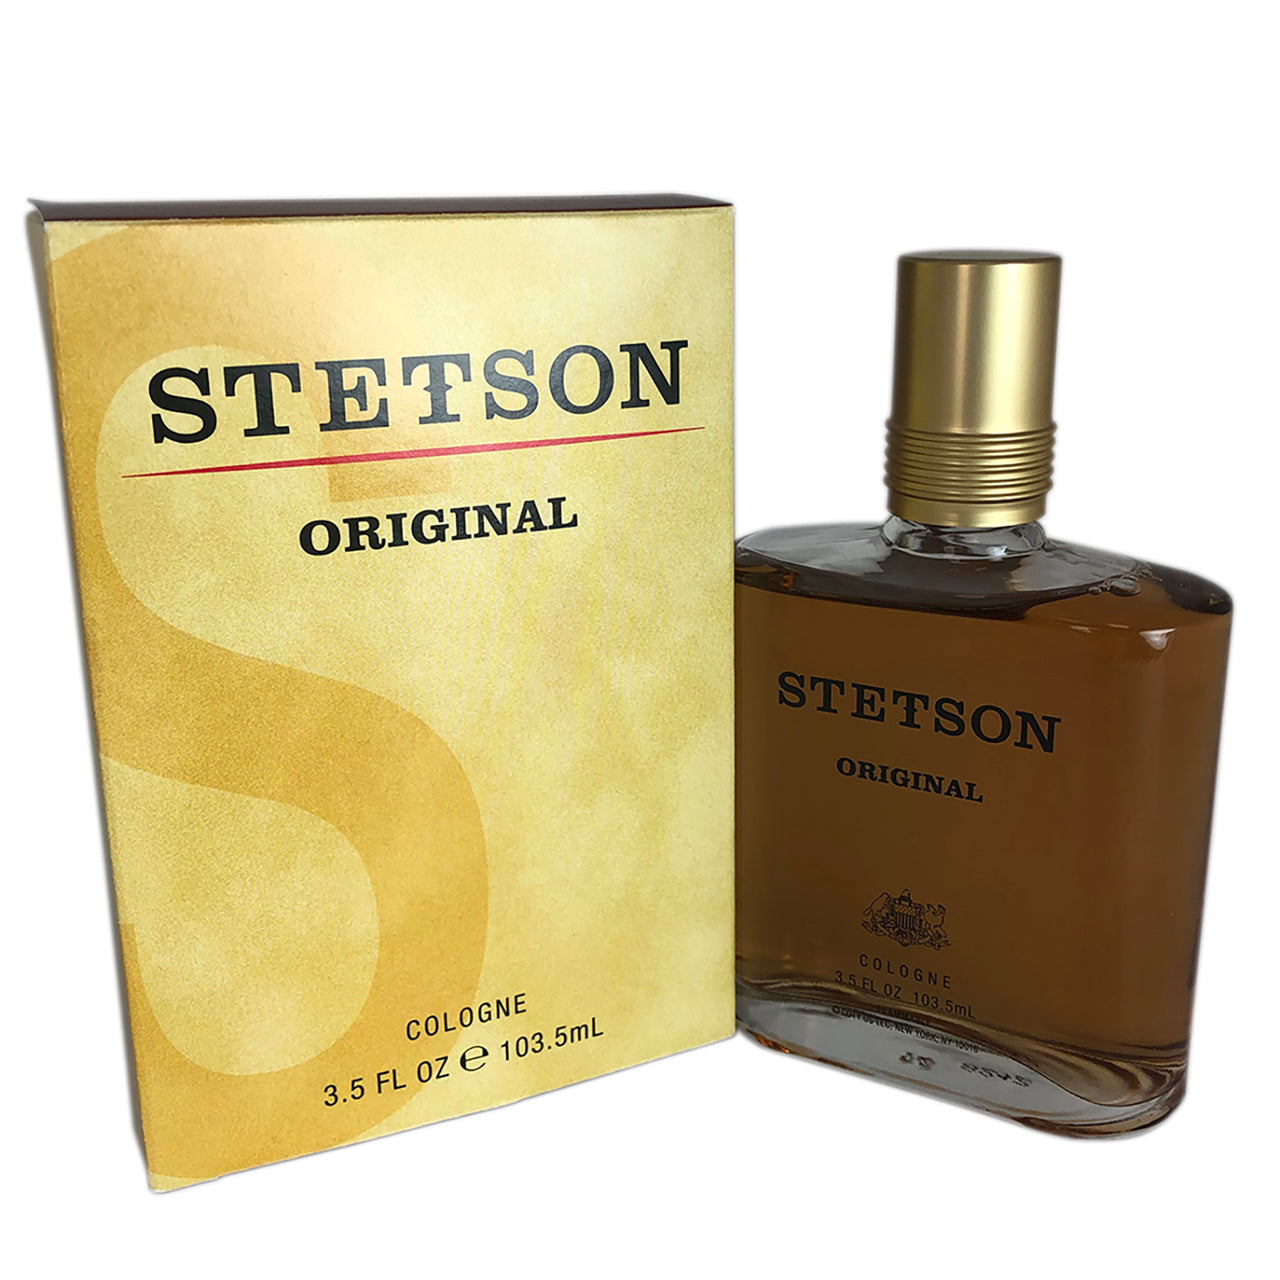 Stetson Original by Coty for Men 3.5 oz Cologne Splash